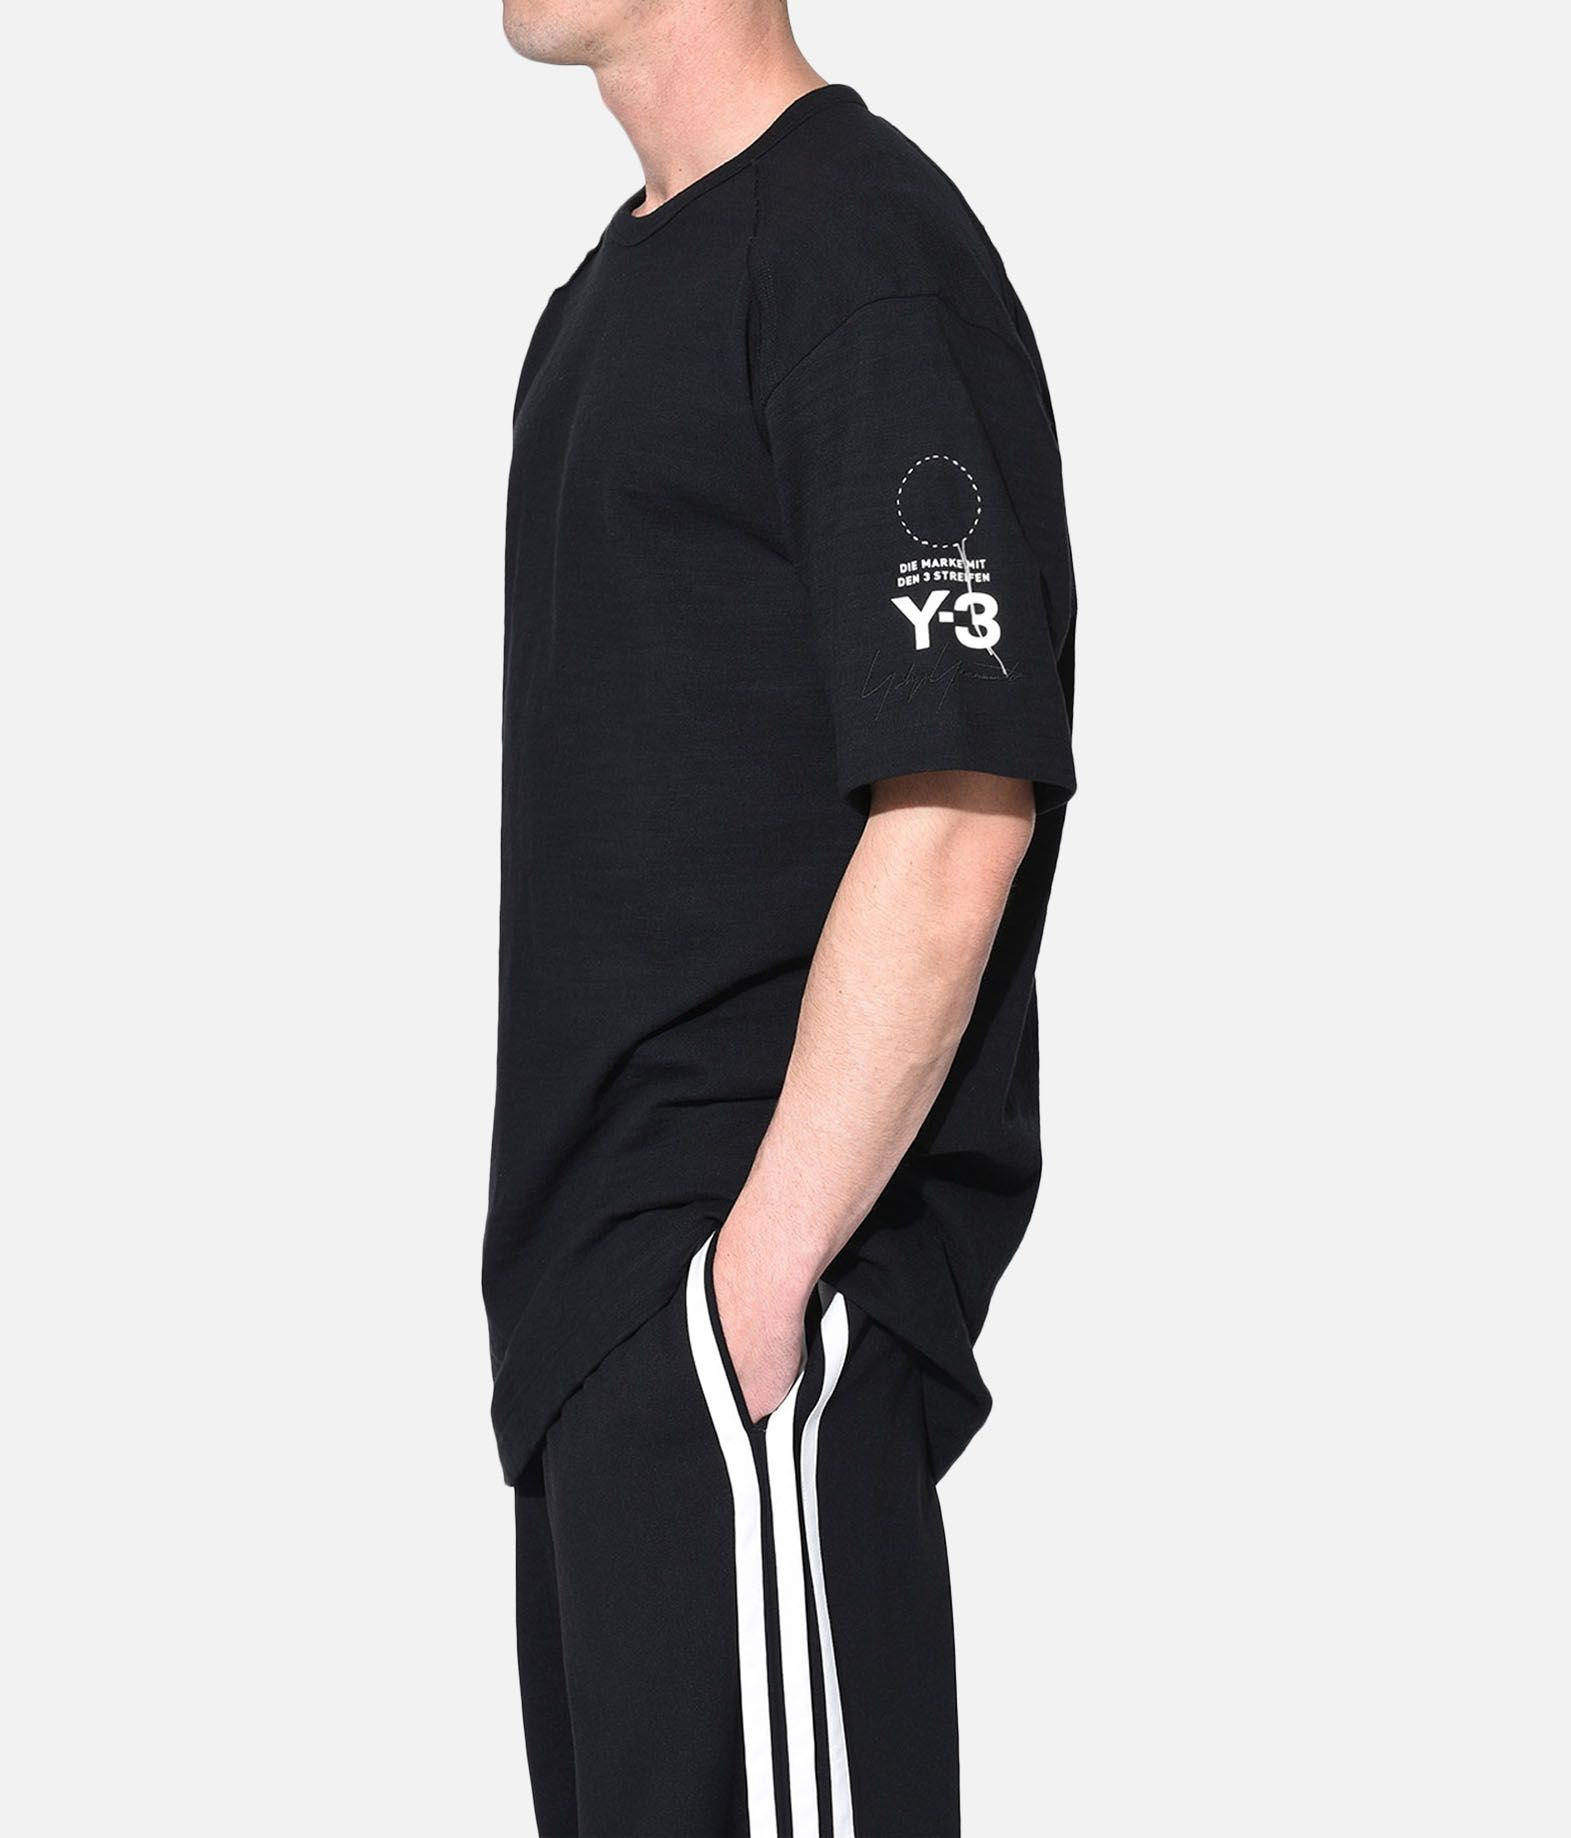 Y-3 Y-3 Sashiko Tee Short sleeve t-shirt Man e